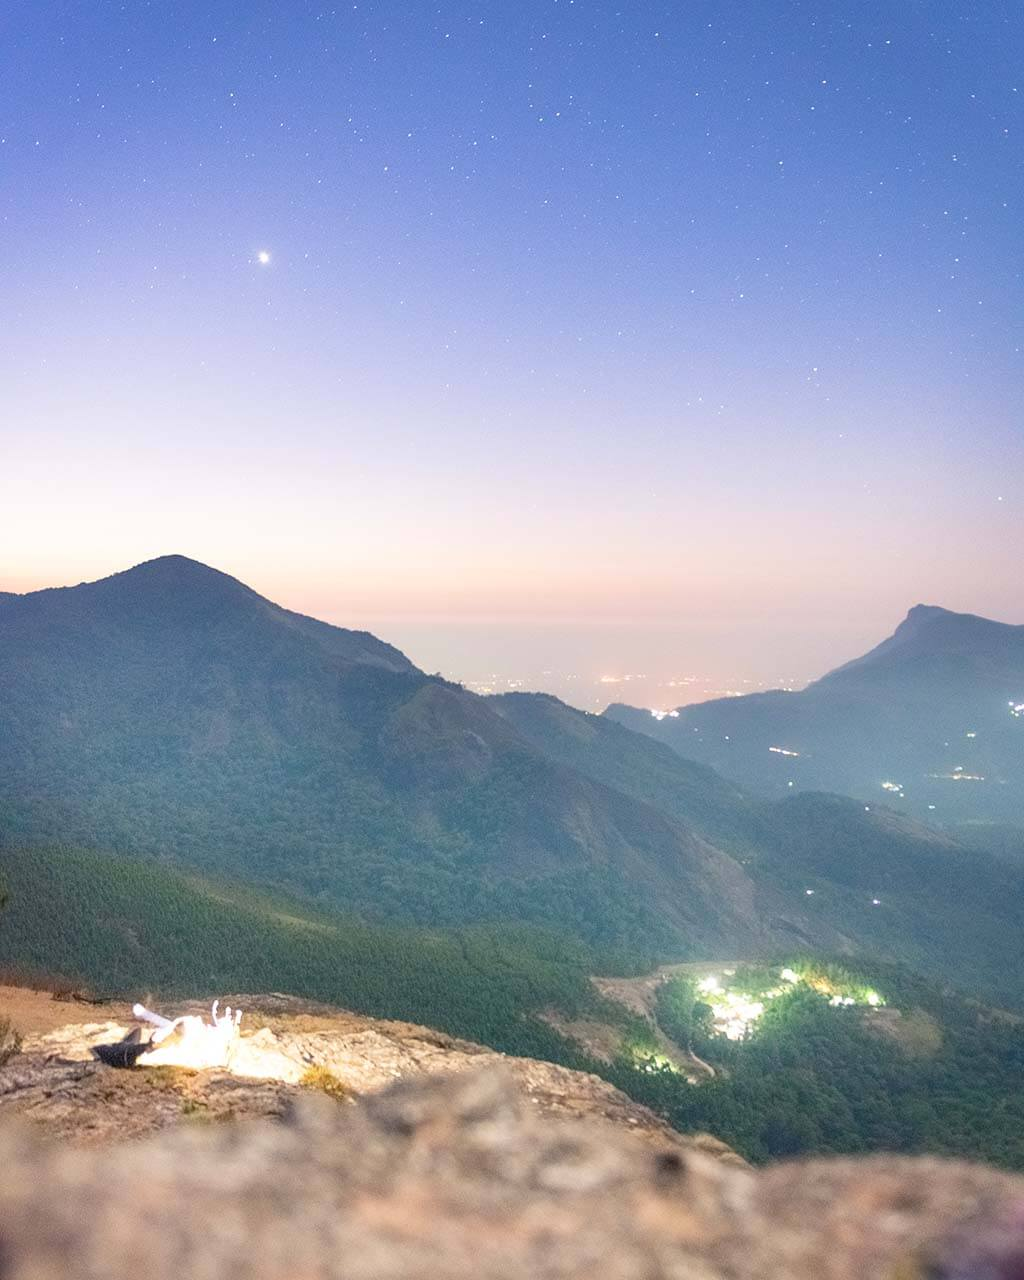 Sky full of stars during our Munnar trekking